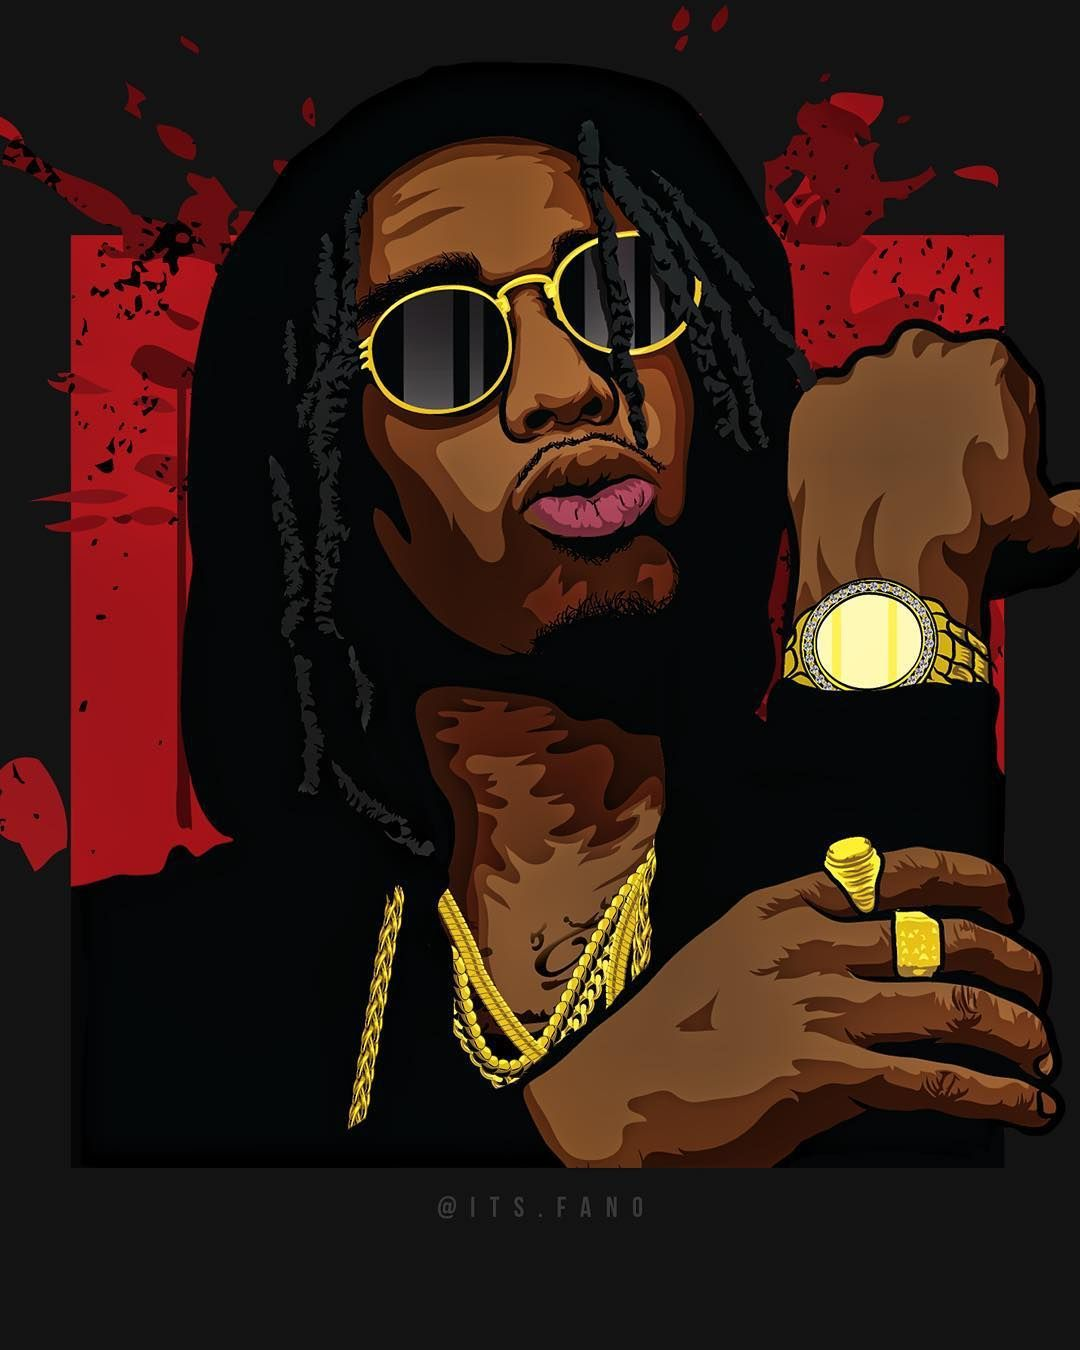 Migos Cartoon Wallpapers - Top Free Migos Cartoon